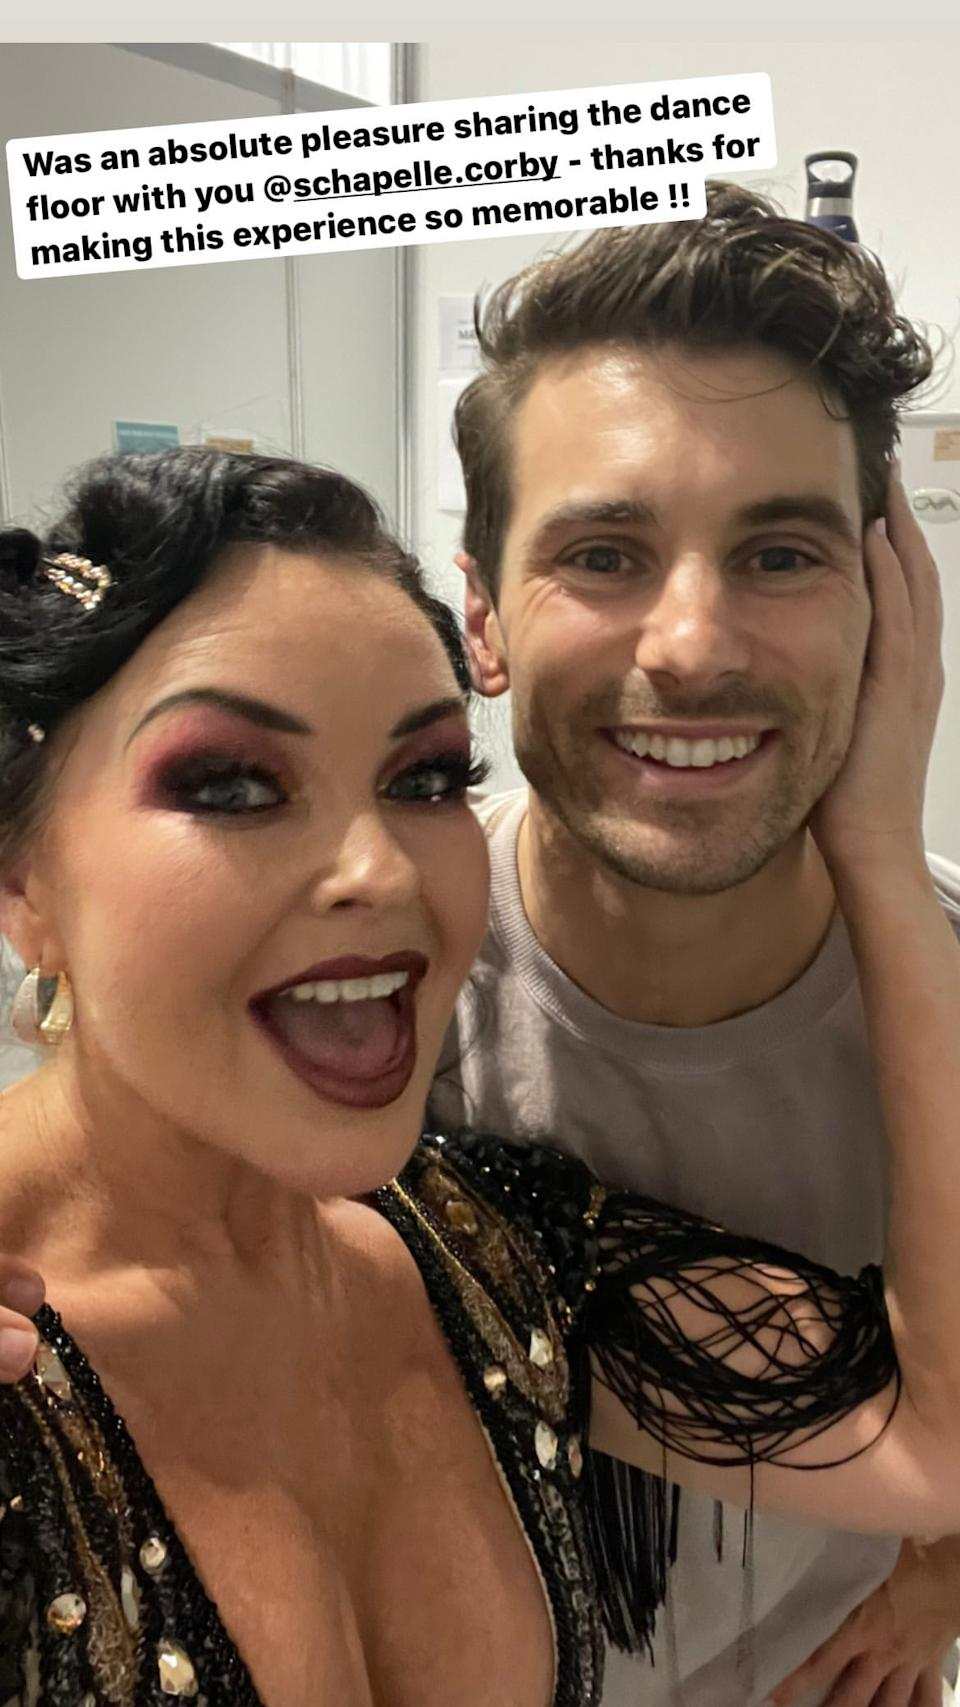 Matthew 'Matty J' Johnson poses fro a selfie with Schapelle Corby backstage on Dancing With The Stars 2021